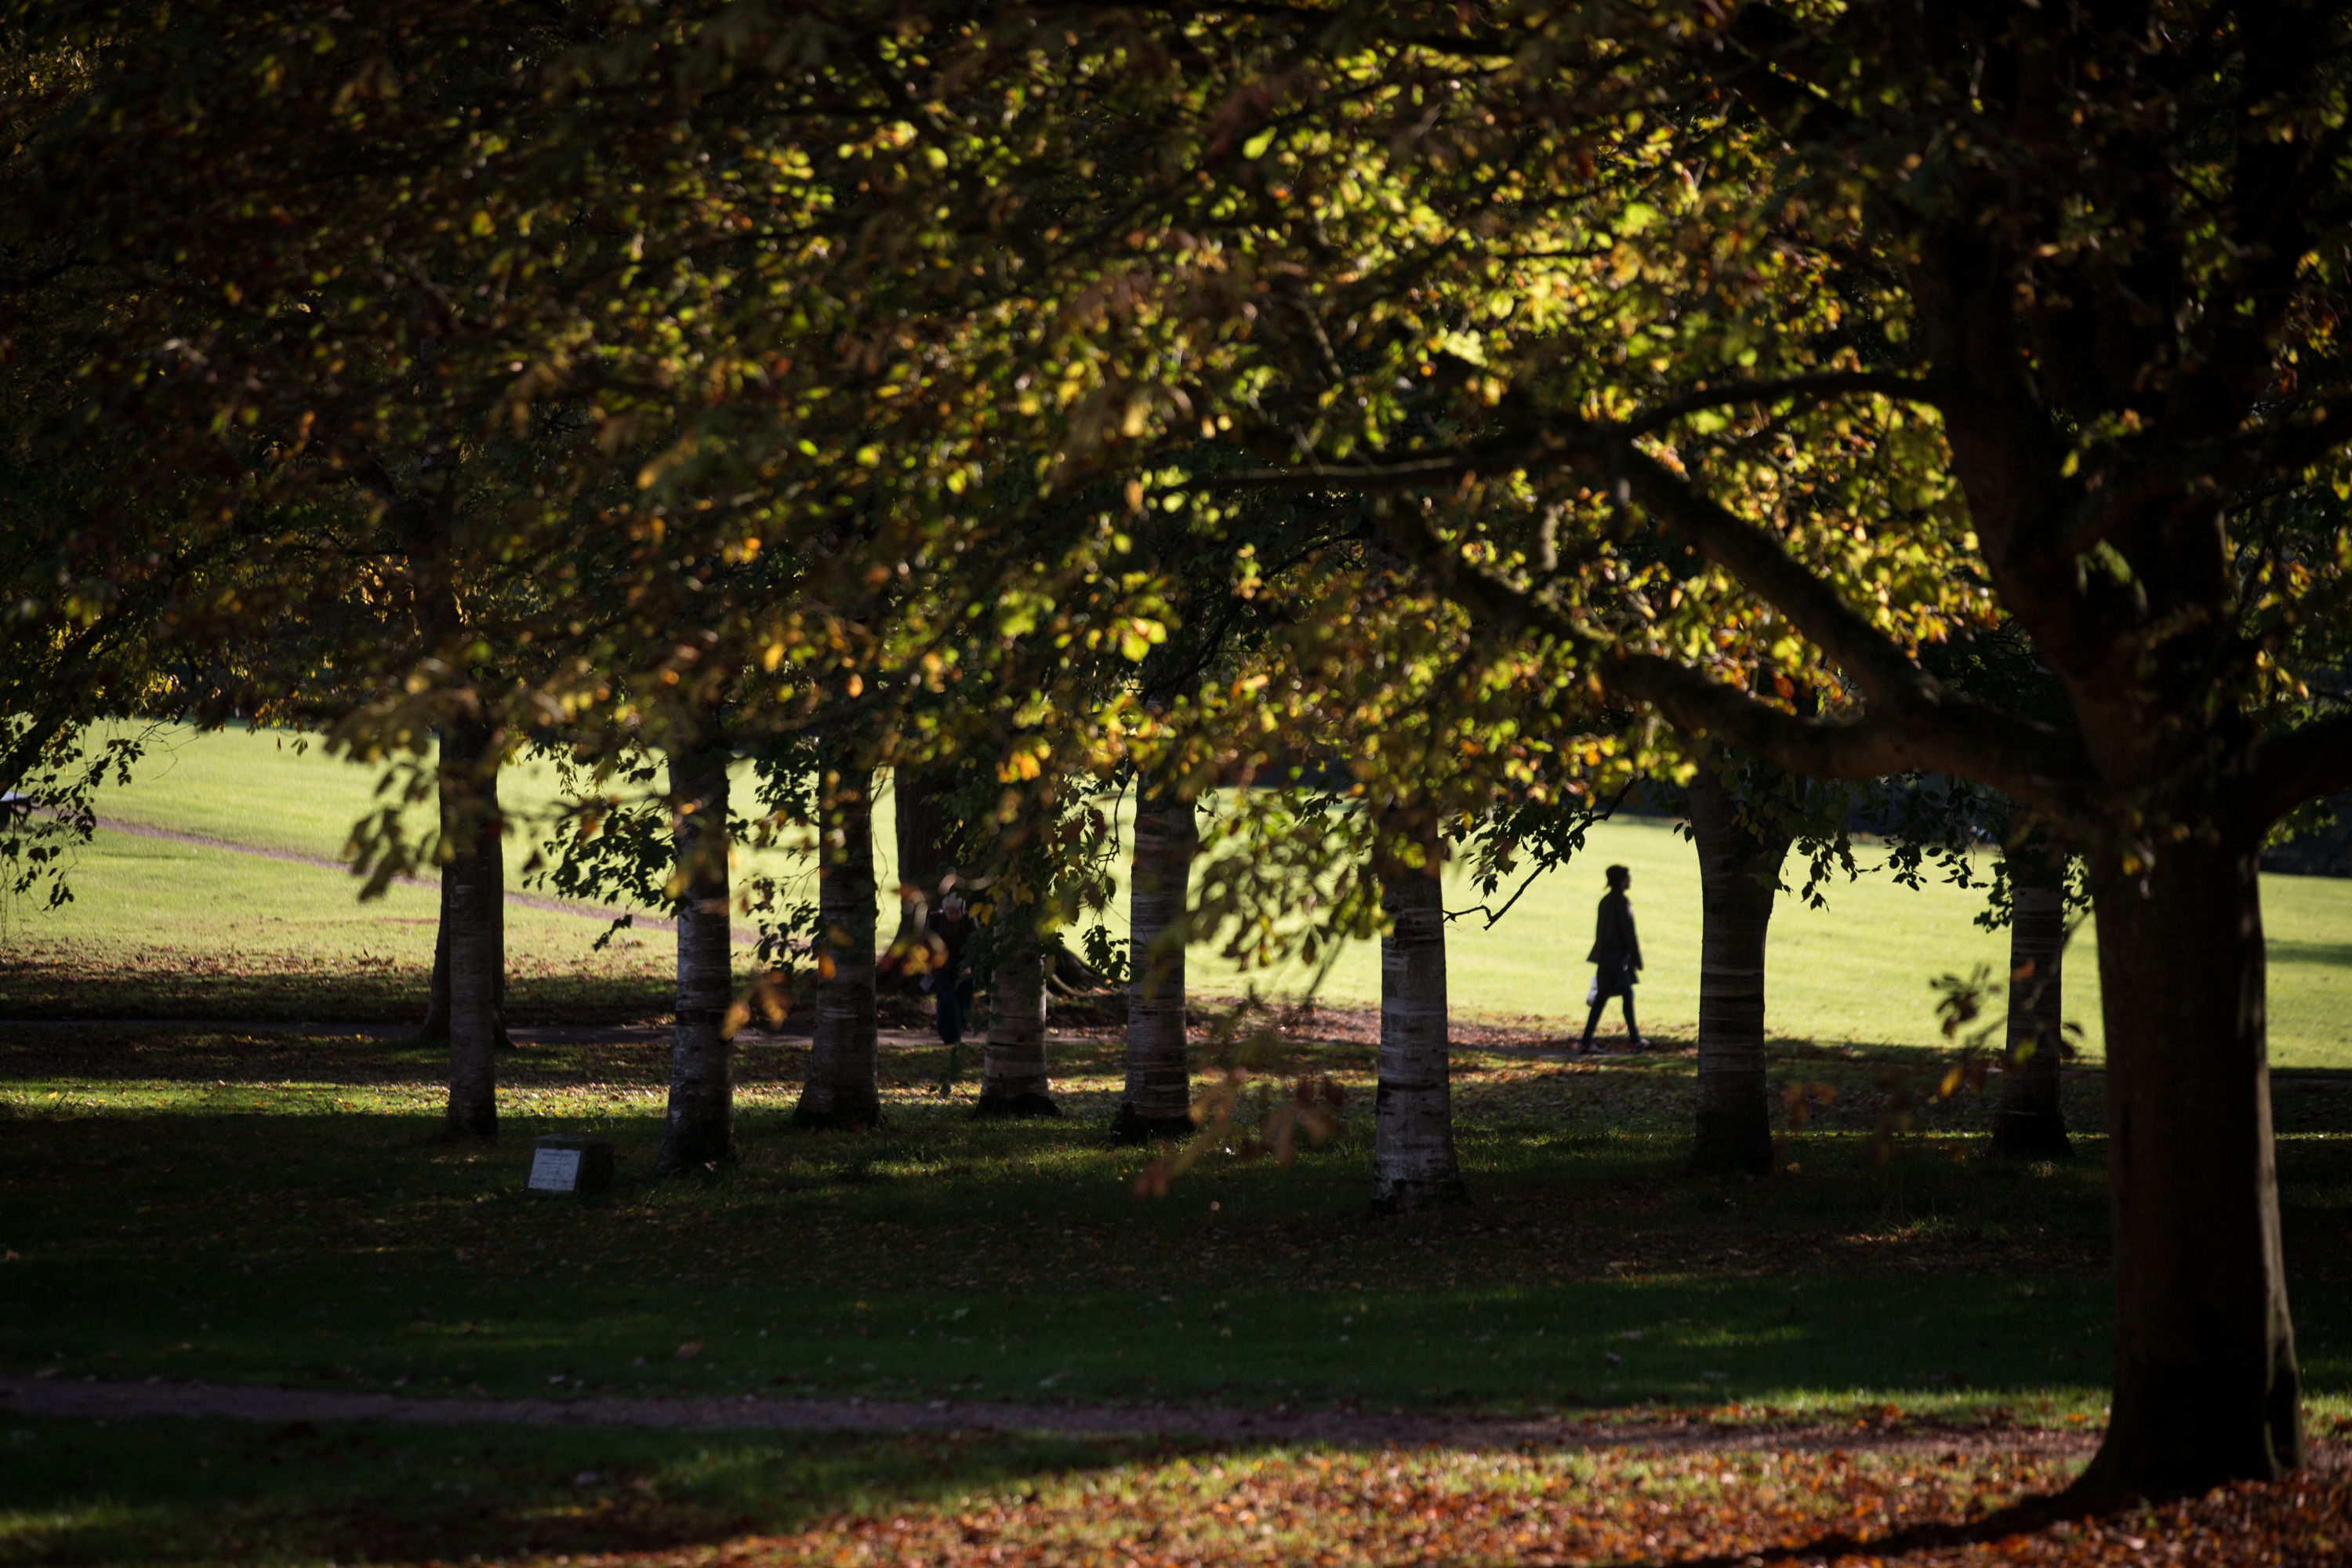 Autumn colors begin to show on trees in Royal Victoria Park in Bath, England, on Oct. 7, 2014